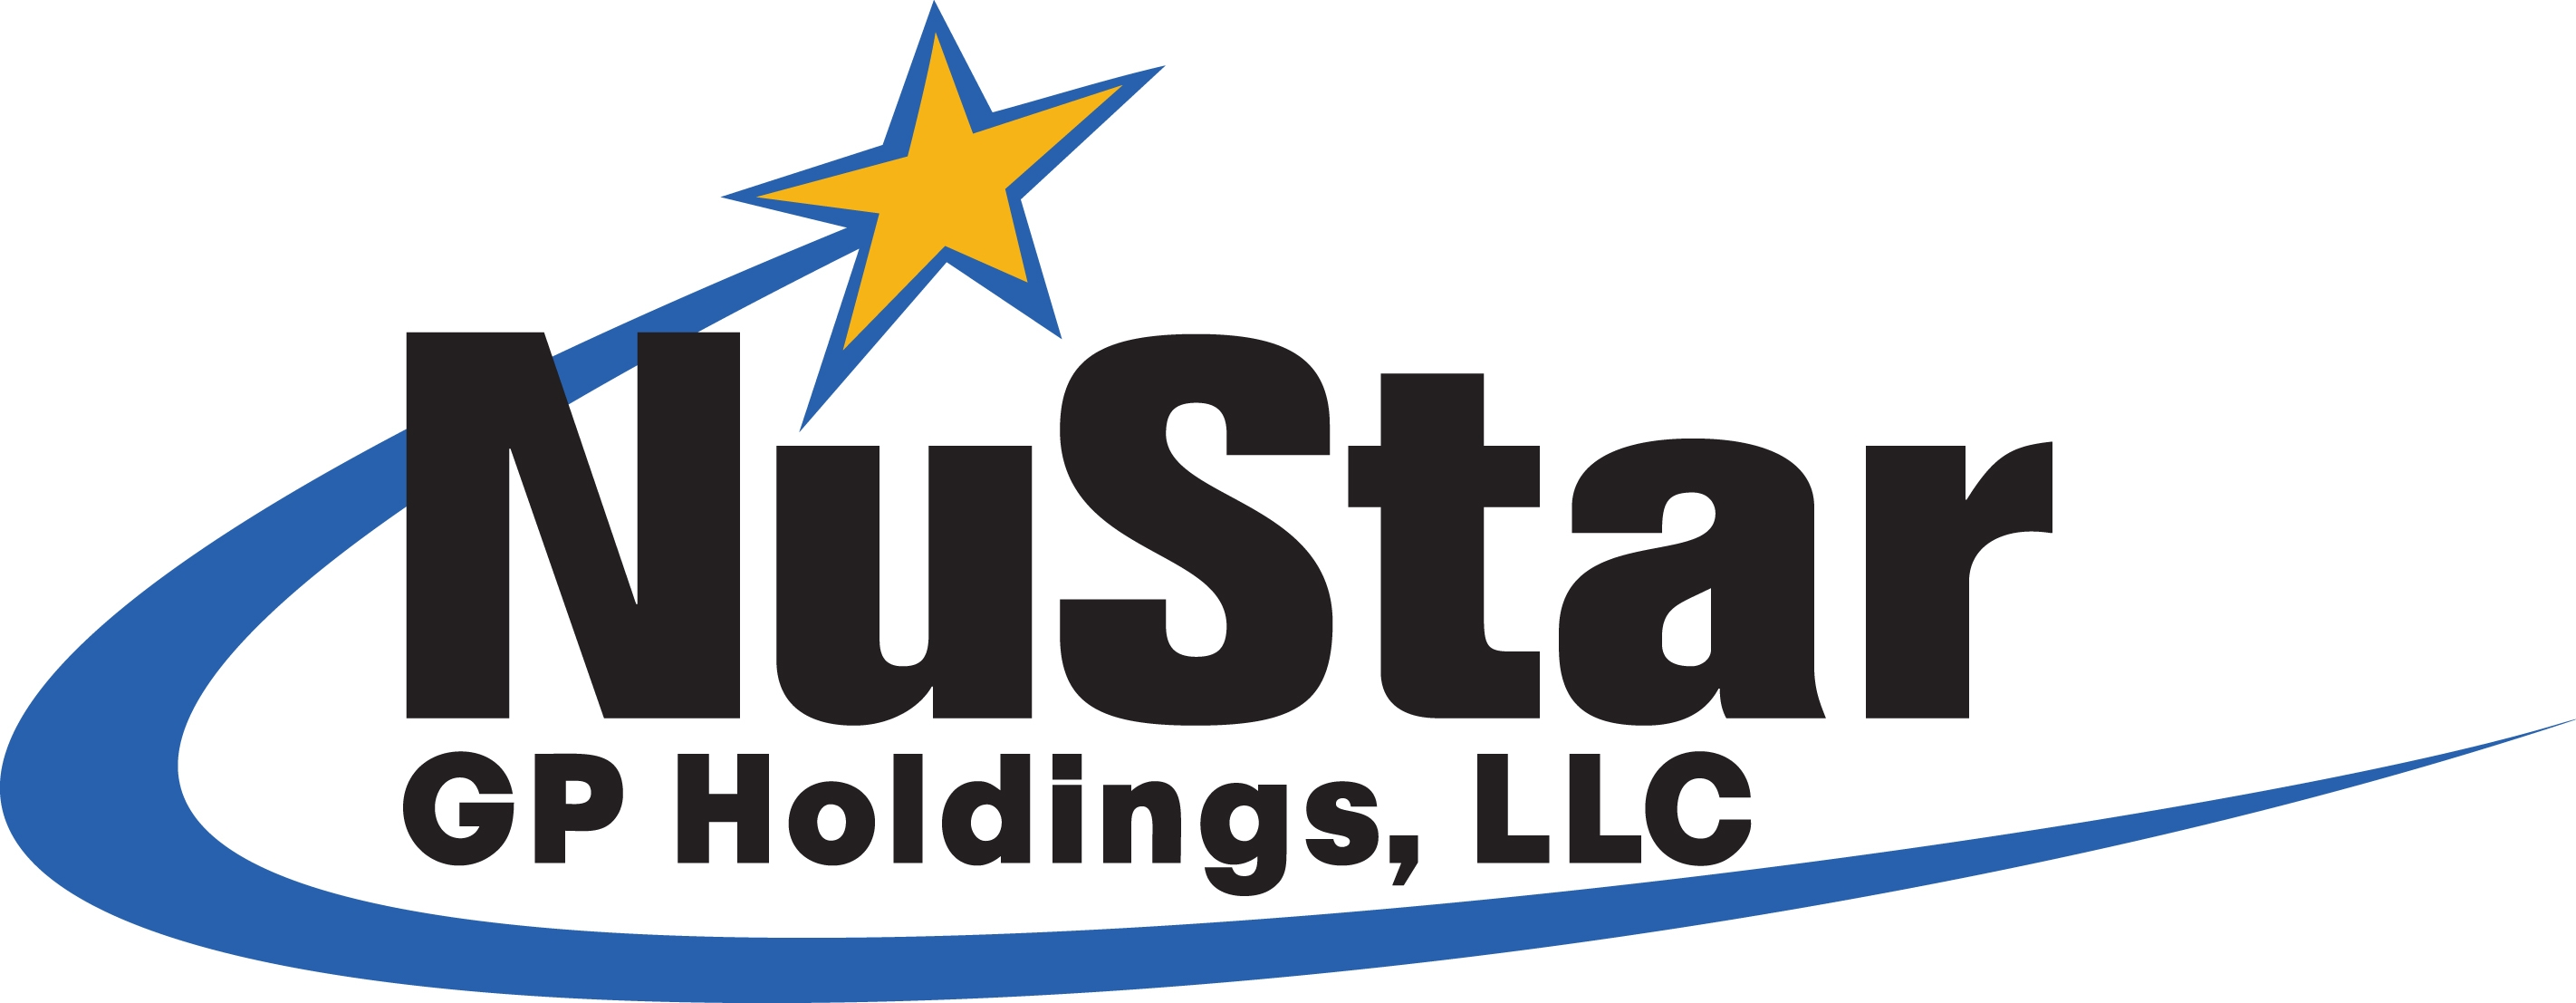 NuStar GP Holdings, LLC logo